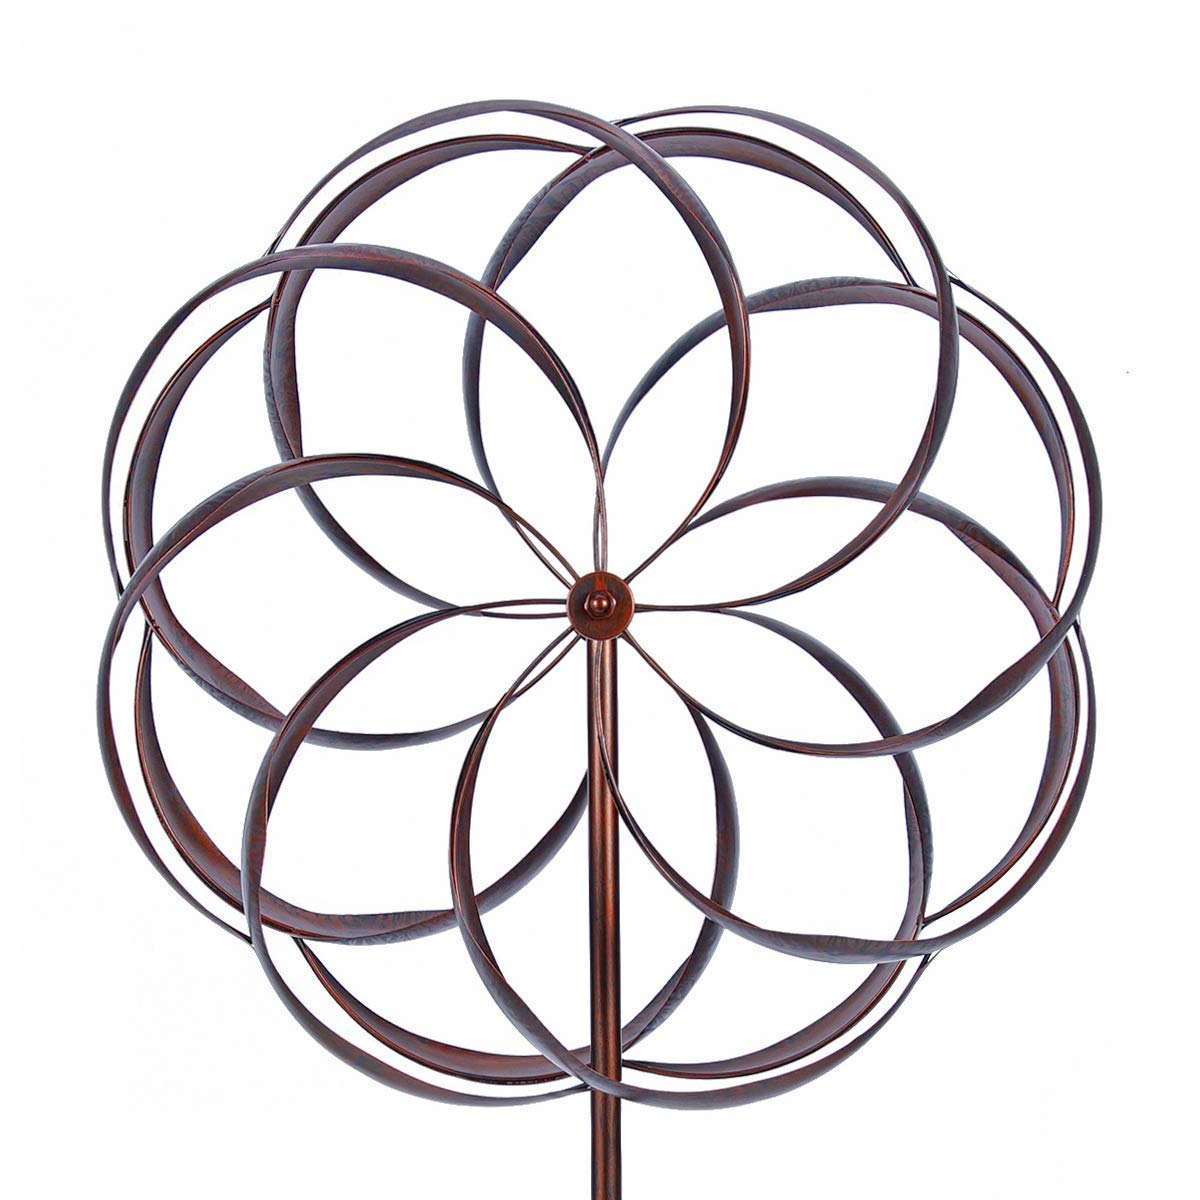 WinWindSpinner Kinetic Wind Spinners 24 inch Outdoor Metal Yard Spinner with Gardening Decorations with Dual Direction Decorative Lawn Ornament Wind Mills